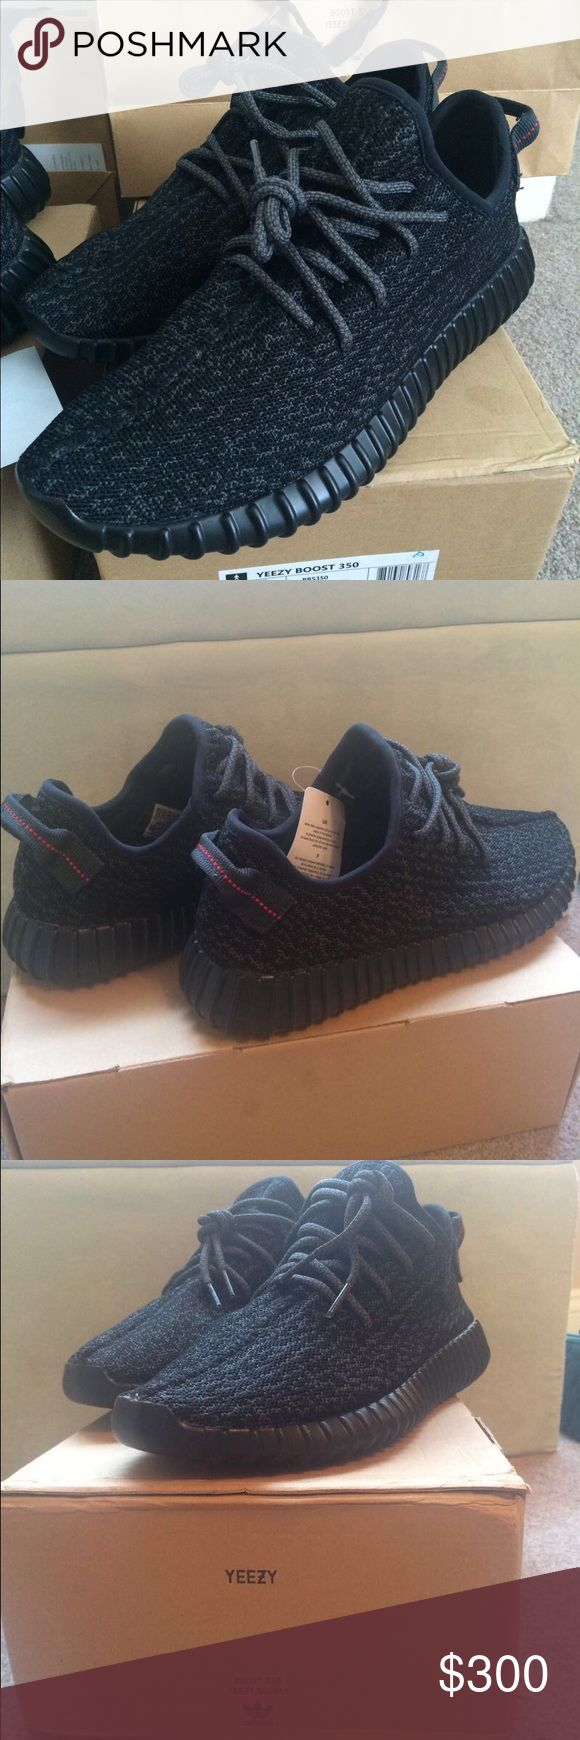 adidas yeezy 350 boost pirate black for sale nike outlet vacaville ca hours of service